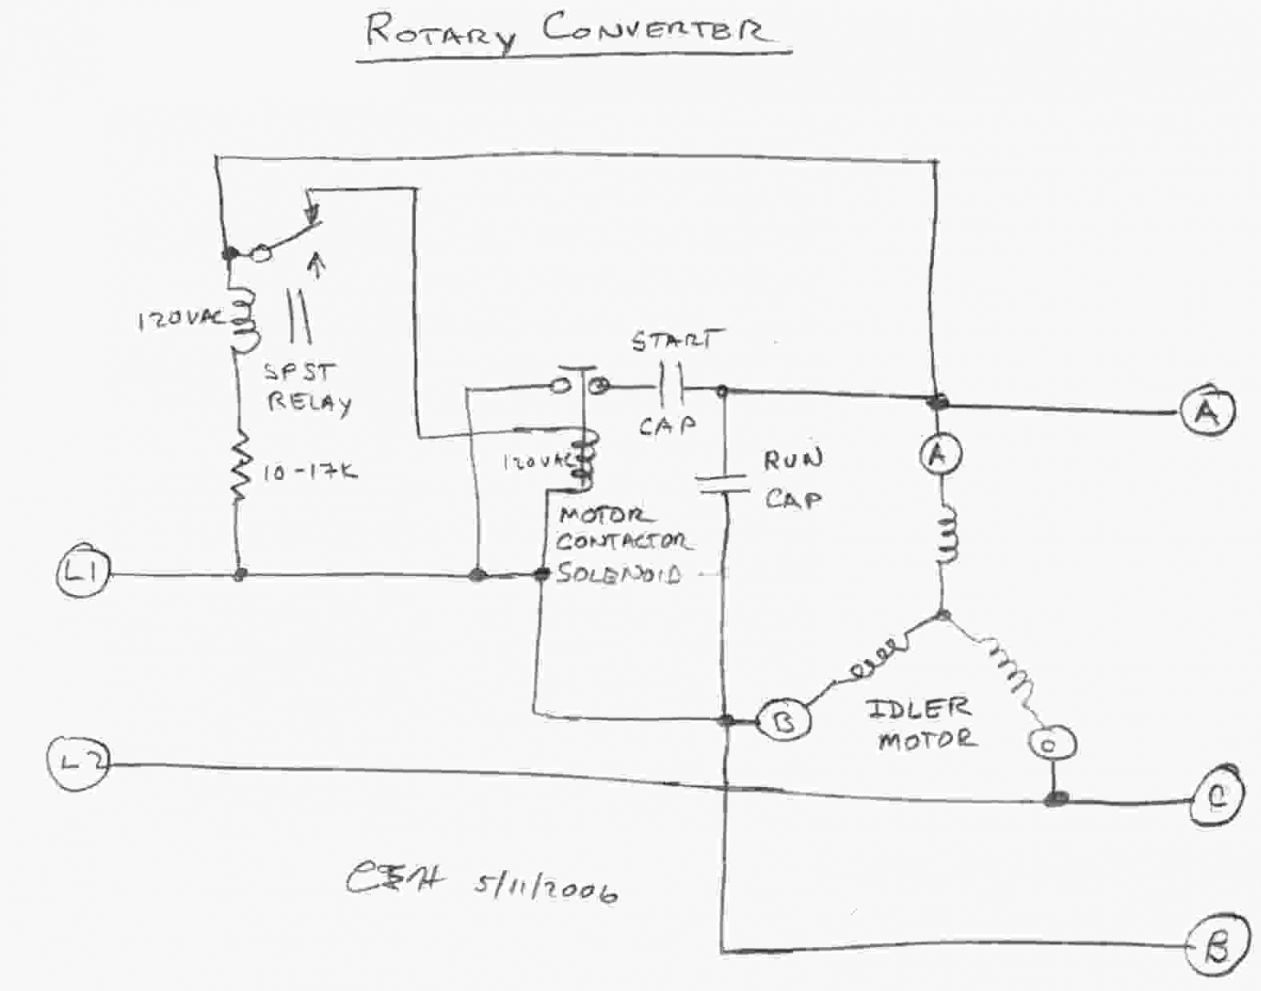 rotary phase converter wiring diagram Download-Elegant Single Phase Motor Wiring Diagram With Capacitor Unique Single Phase Single Phase To 3 Phase 9-e